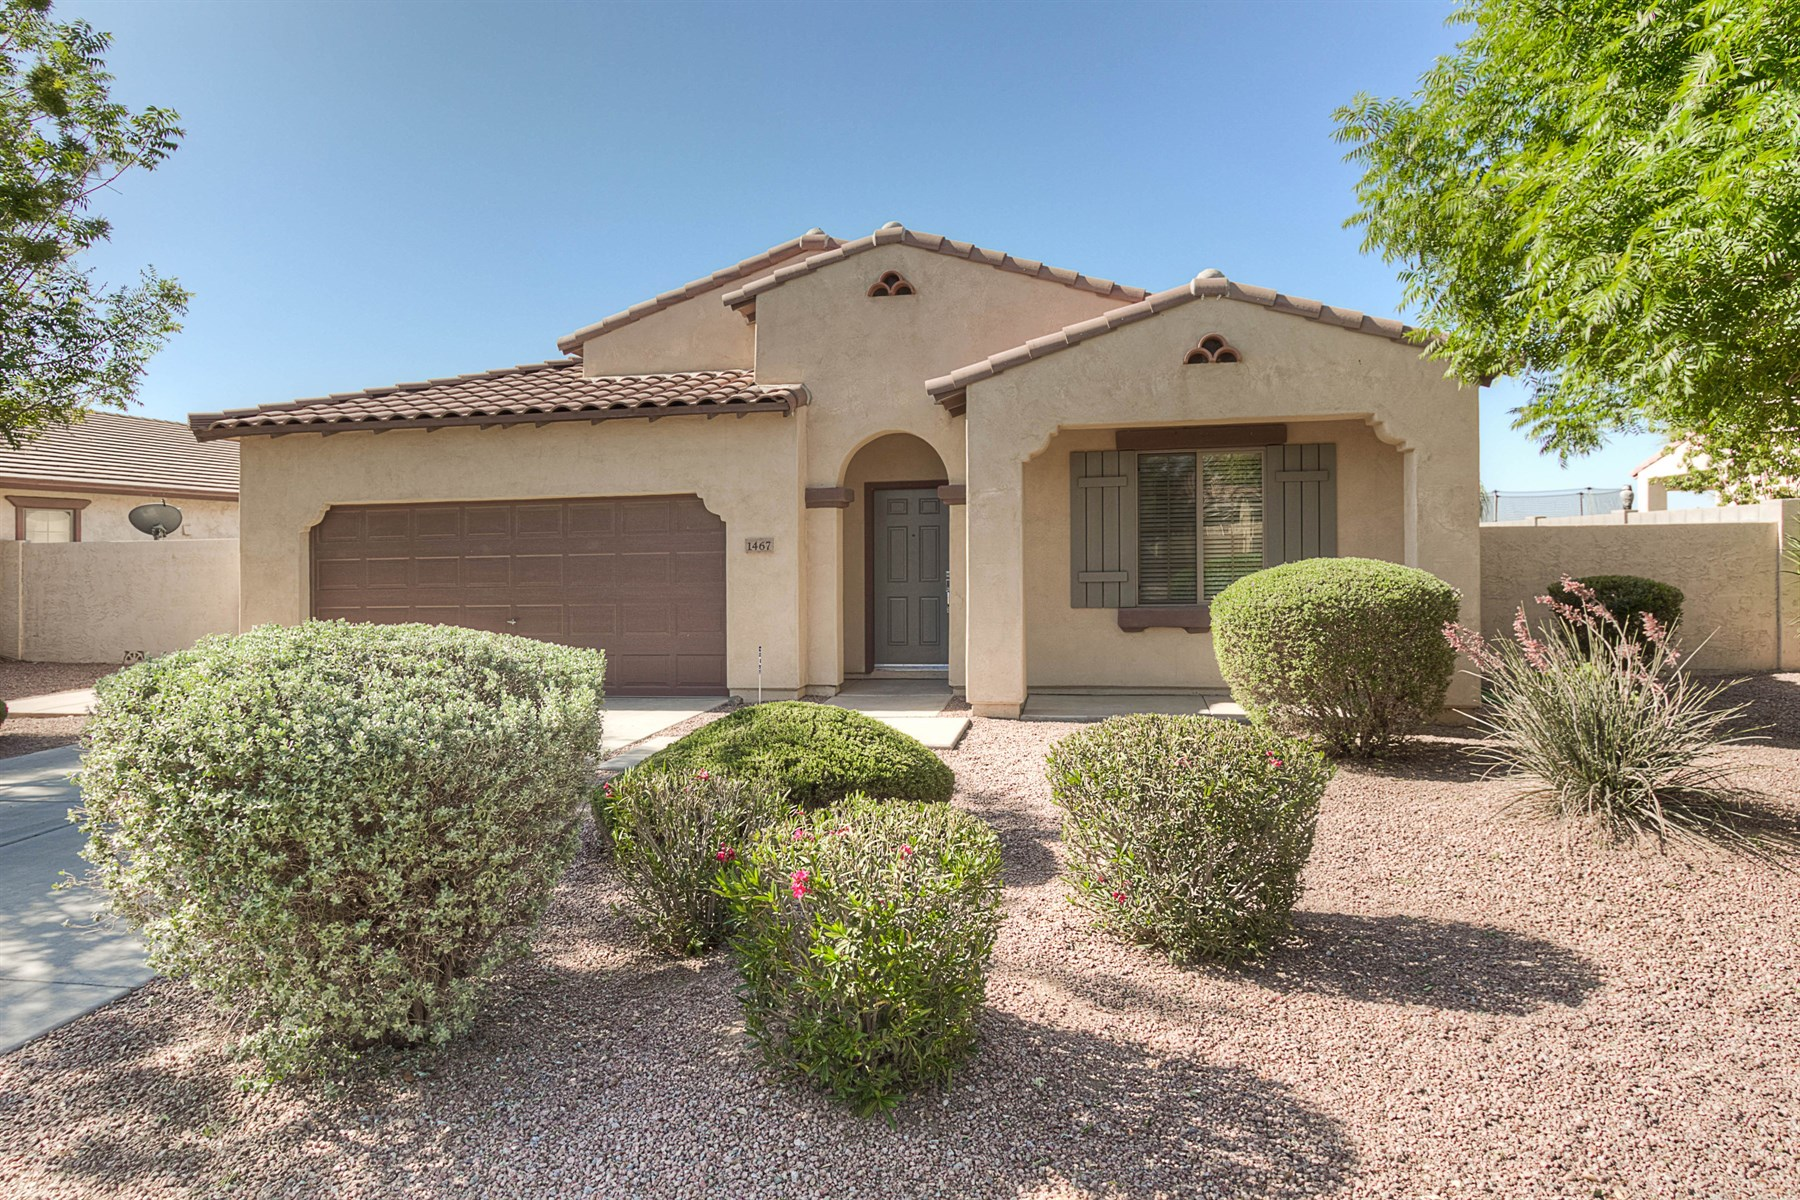 sales property at Beautiful single level in great gilbert neighborhood